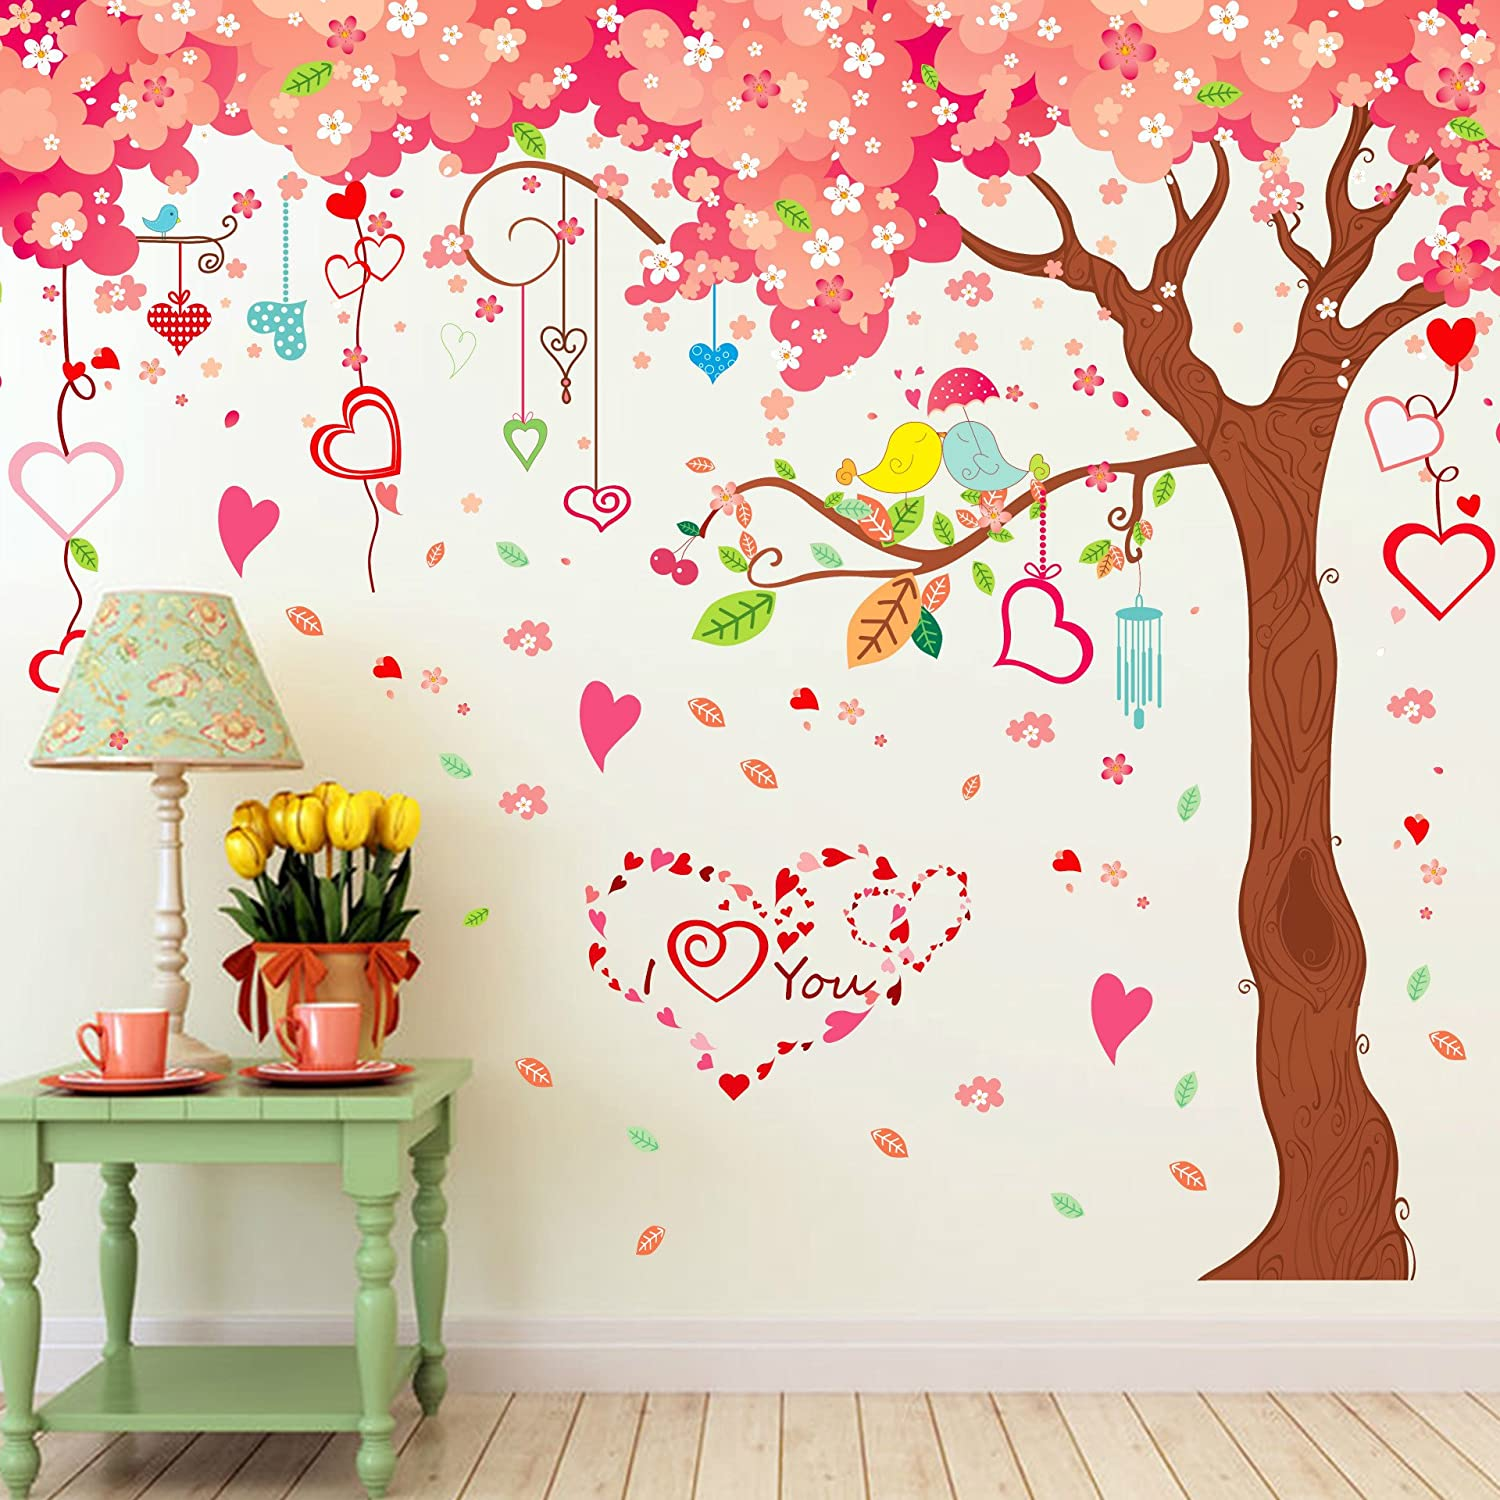 Cute Door Wall Sticker Lovely Decal Self Adhesive Bedroom Decor Decal Removable